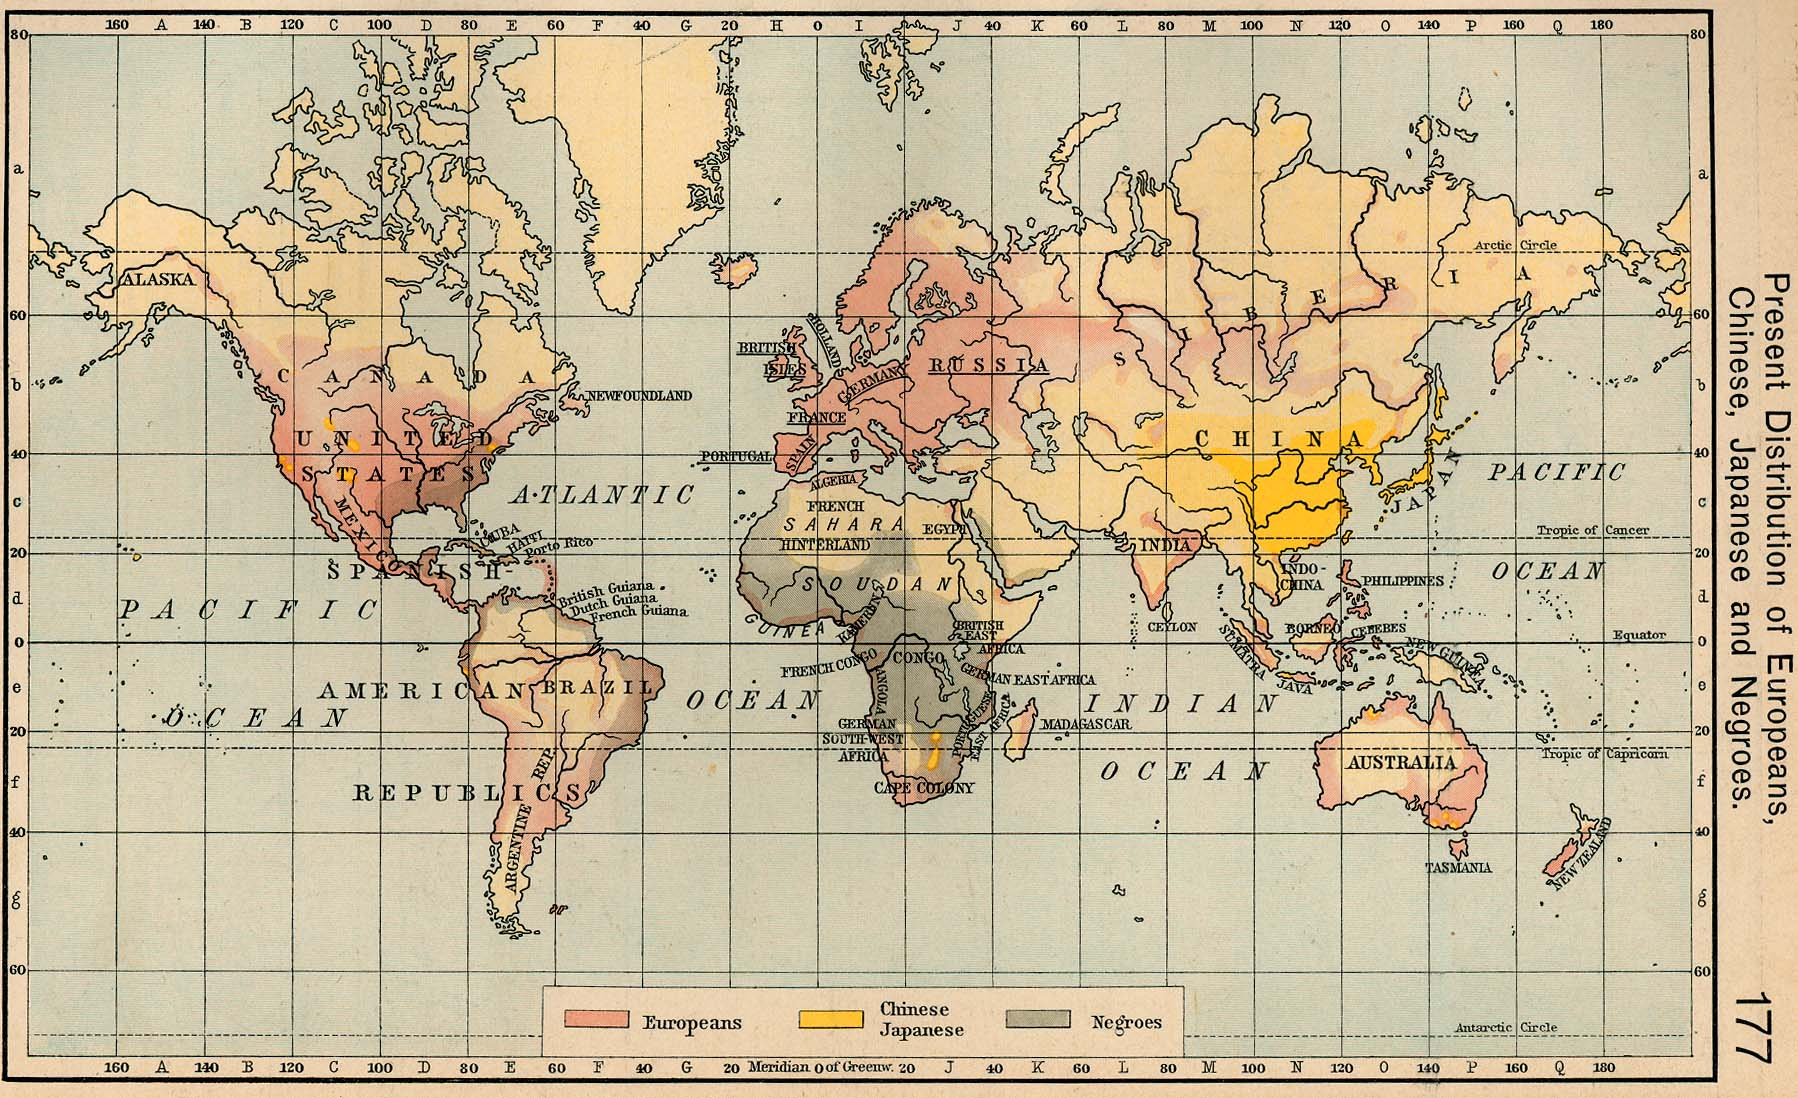 World historical maps perry castaeda map collection ut present distribution of europeans chinese japanese and negroes 1911 gumiabroncs Image collections